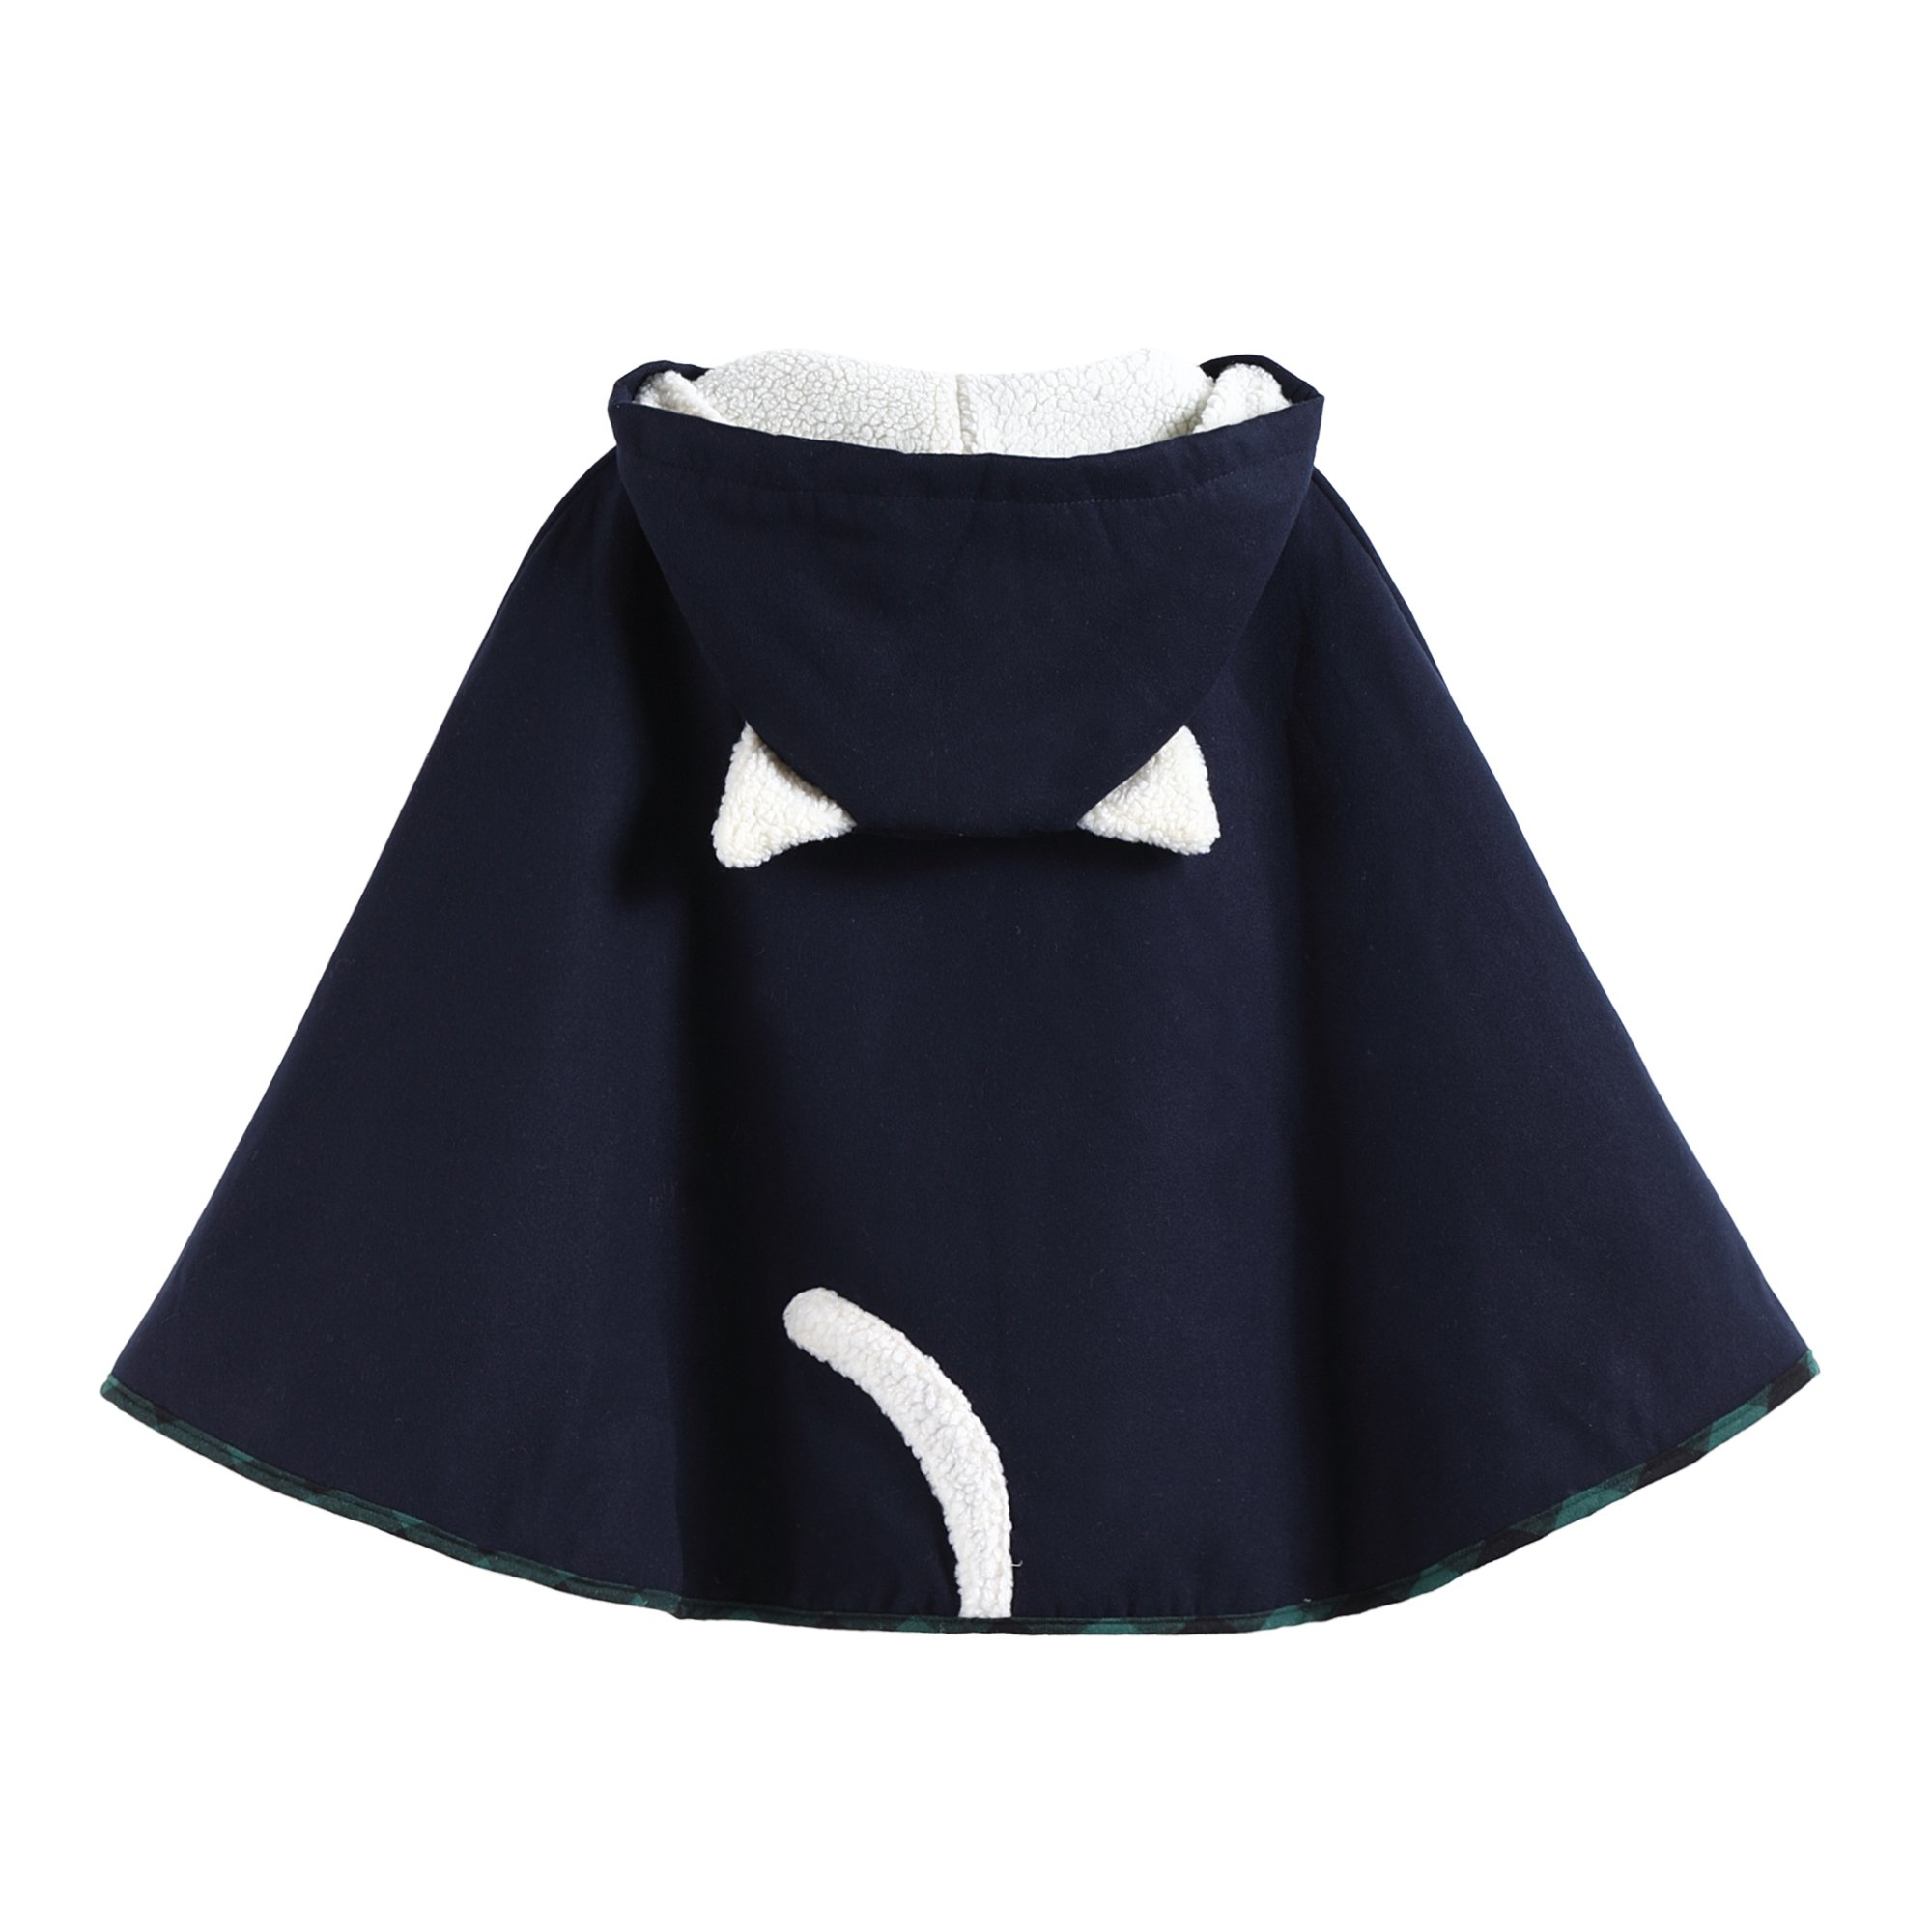 Aza Boutique Womens Cute Button Down Tweed Cat Ears Hooded Cape,One Size,2_navy_fleece